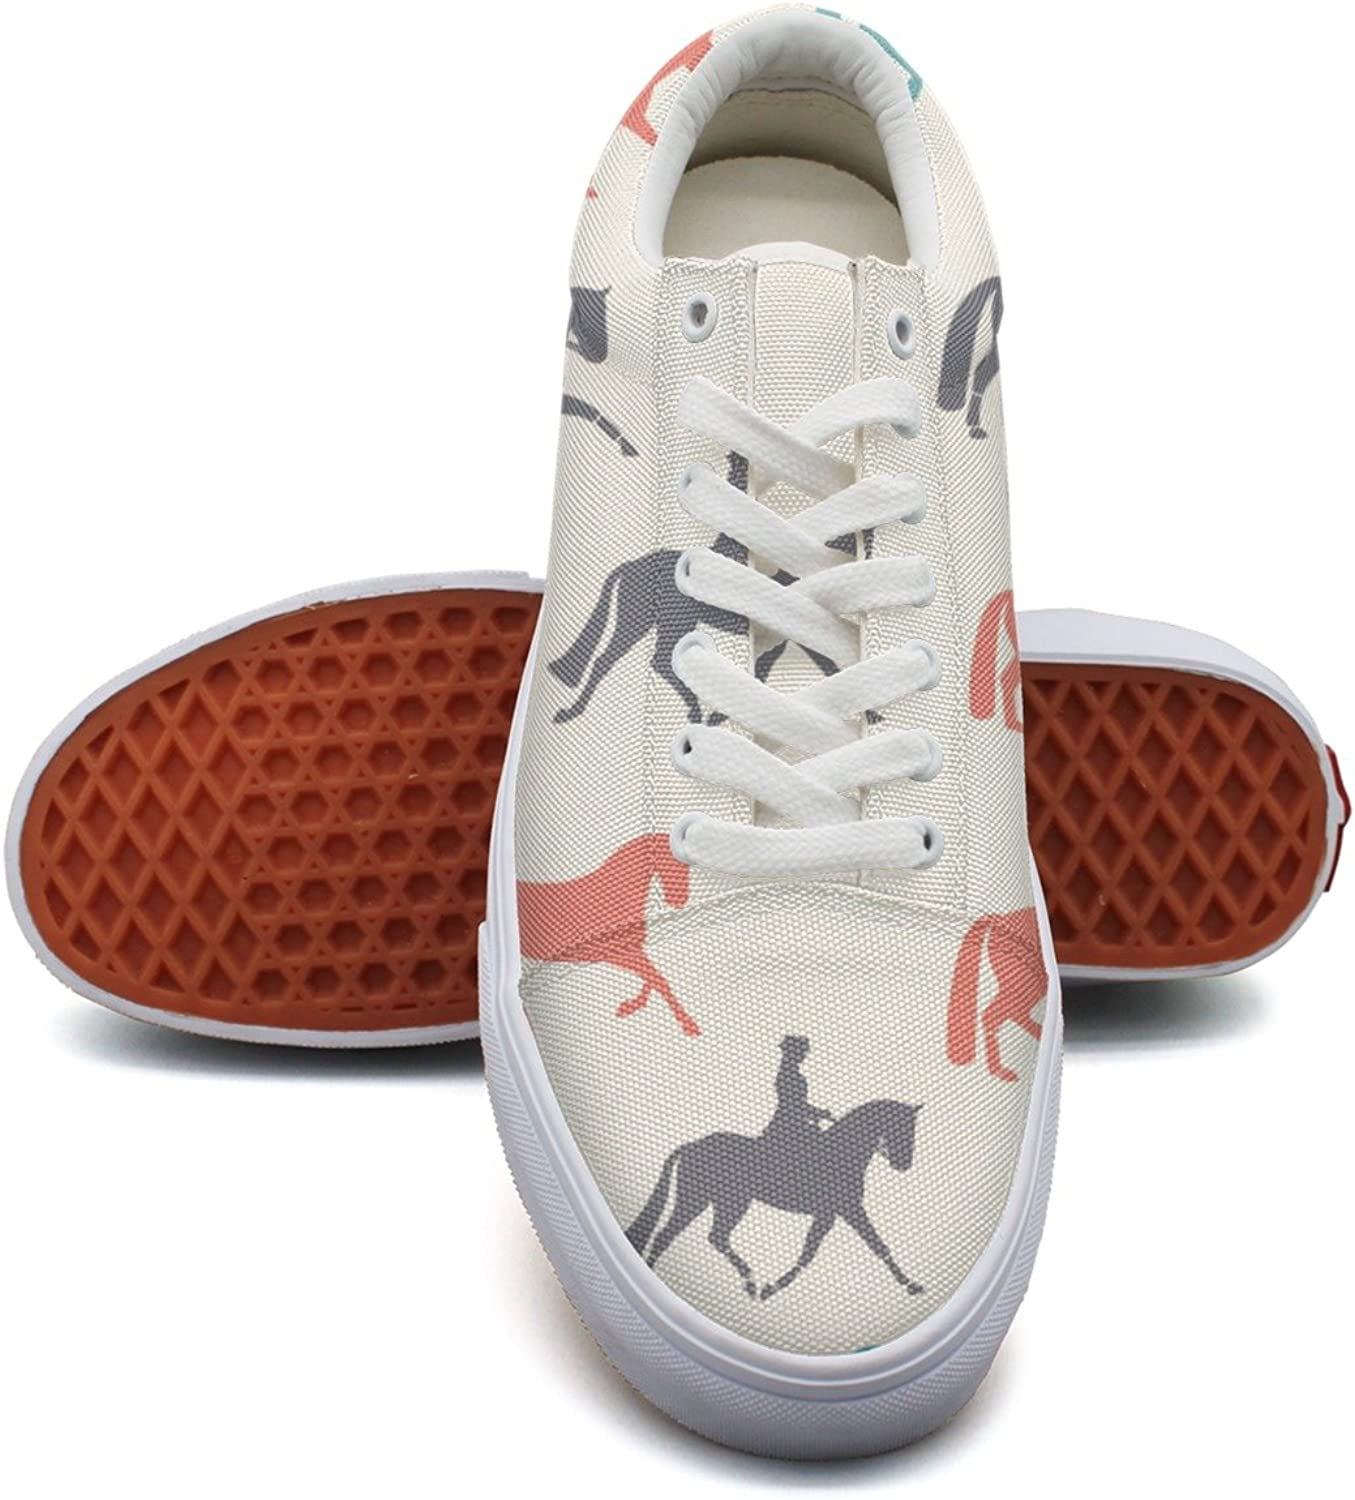 Horse Pattern Simple Style Women's Casual Sneakers shoes Footwear Cool Cute Designer